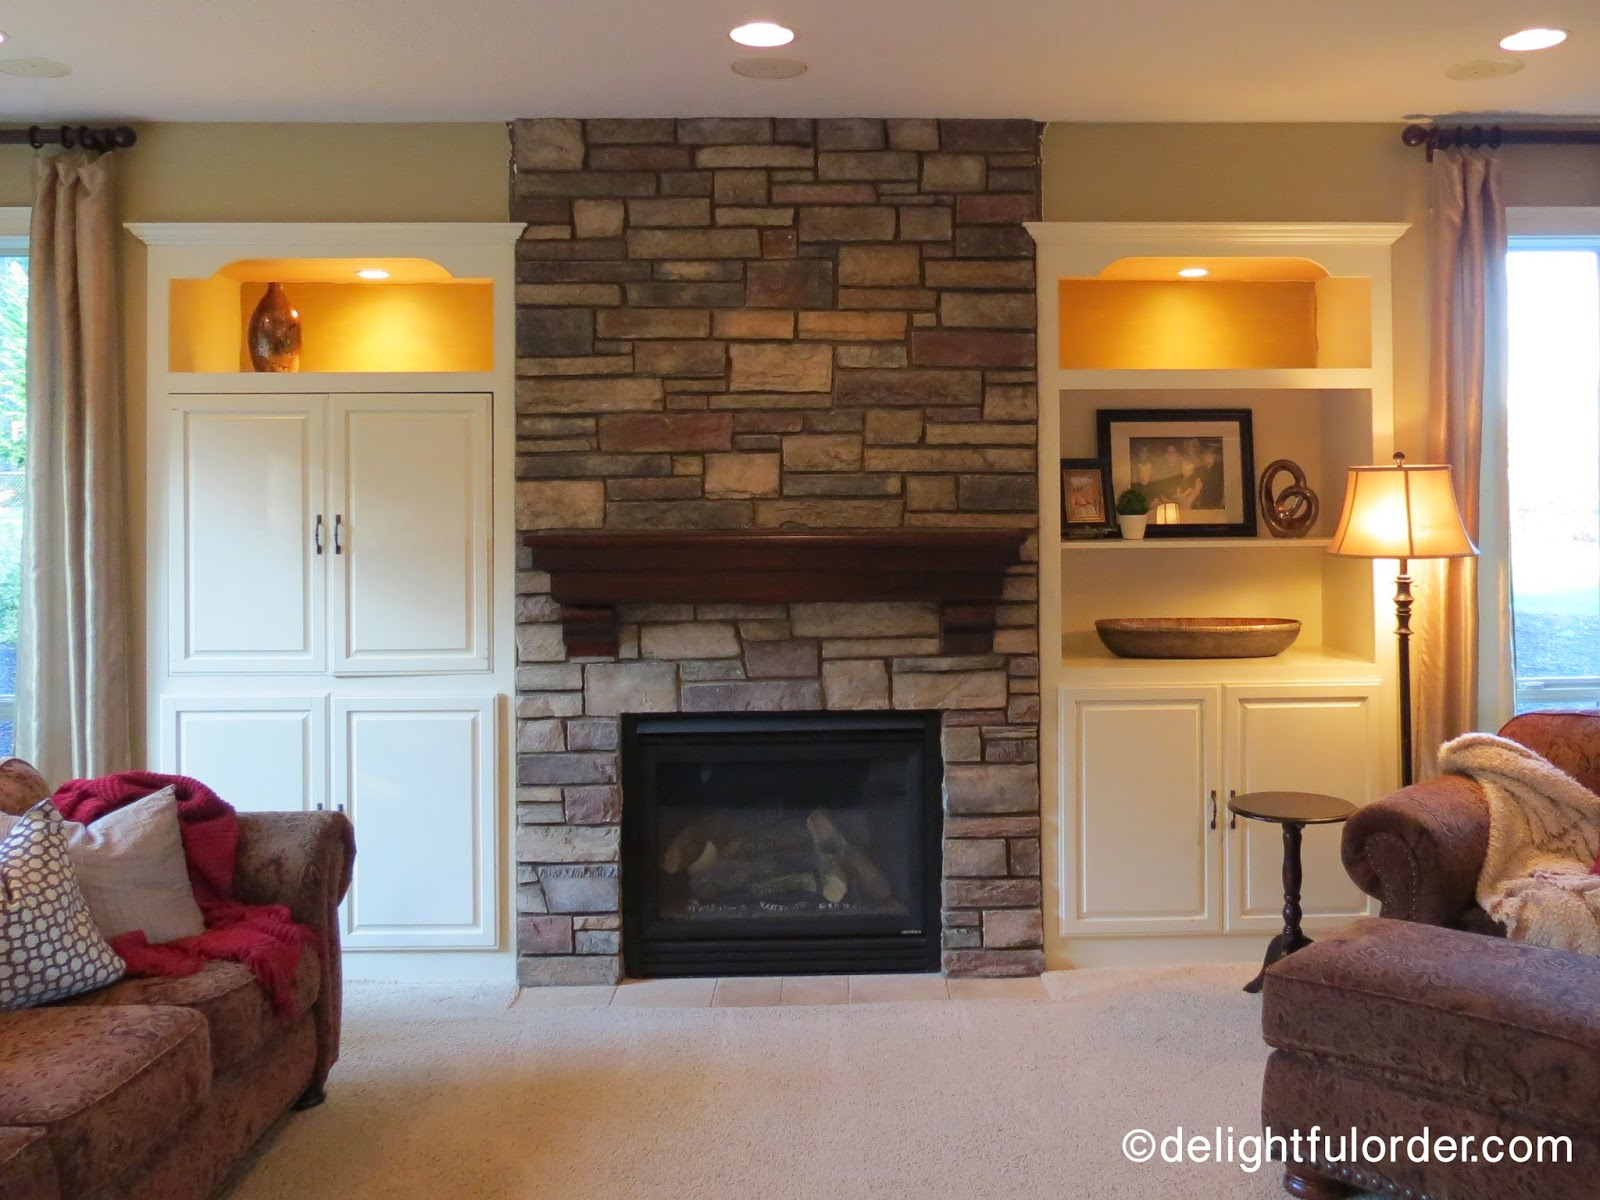 Delightful Order: New Fireplace and Mantel